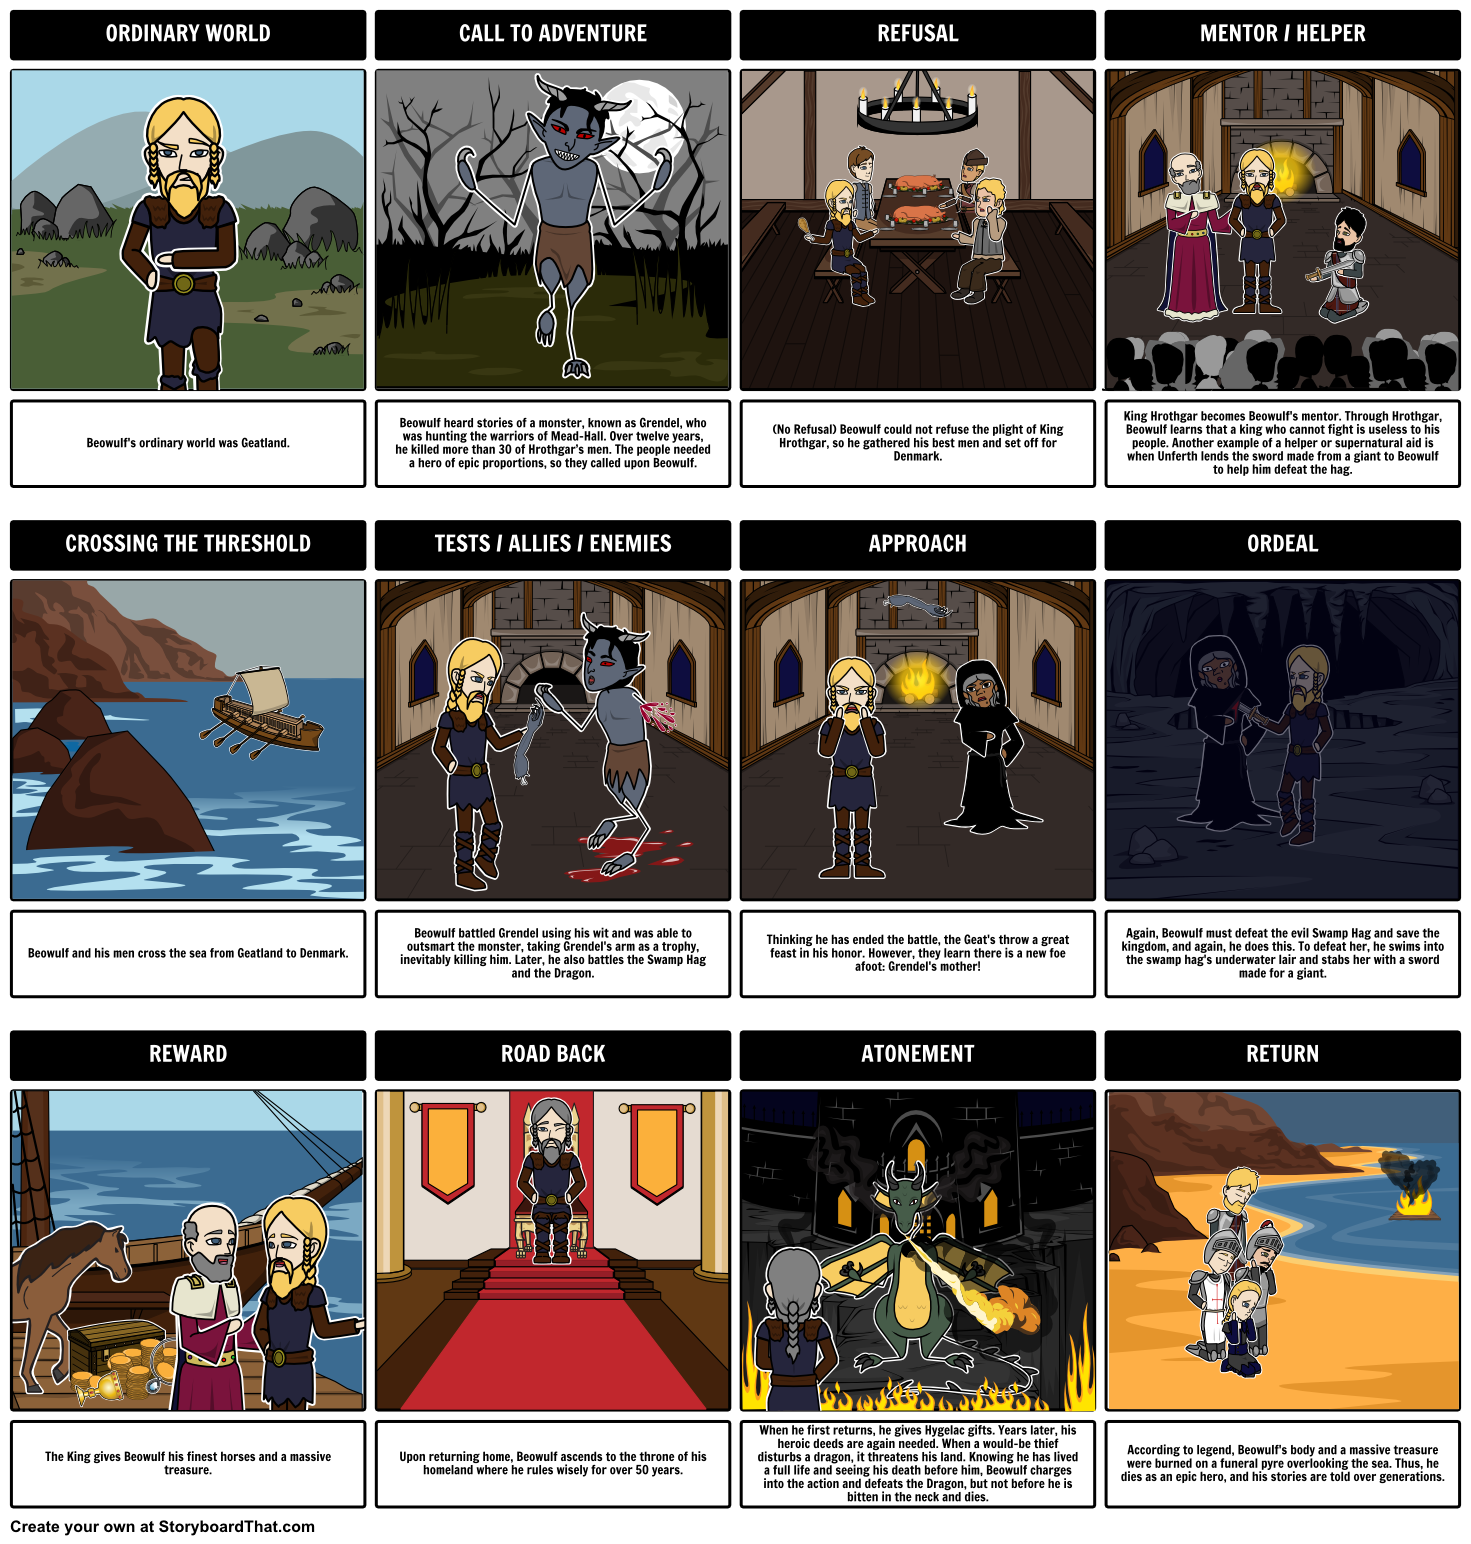 beowulf heroic journey plot diagram using a storyboard beowulf heroic journey plot diagram using a storyboard students can track beowulf s